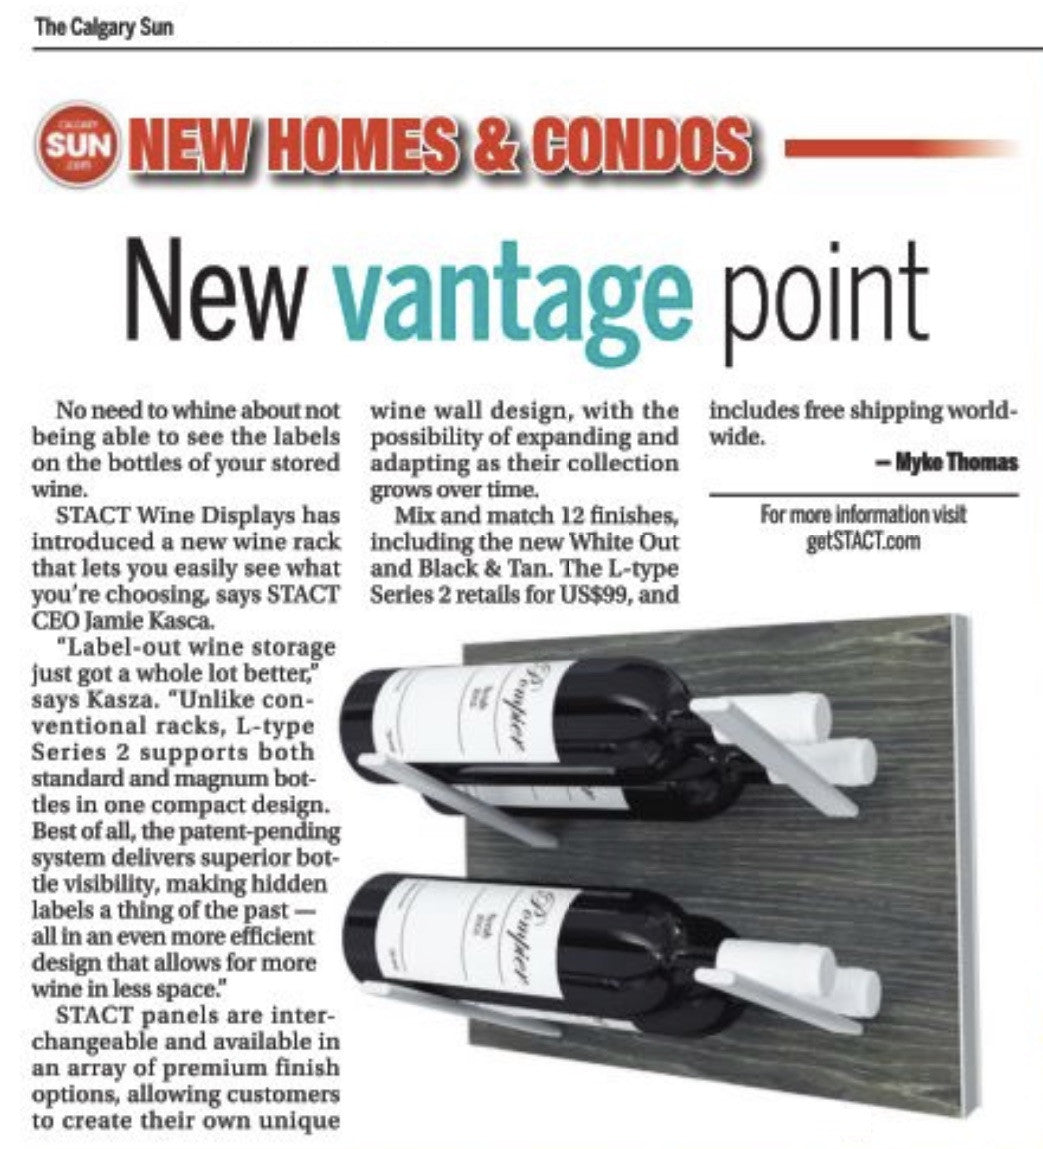 label-out wine storage - calgary sun